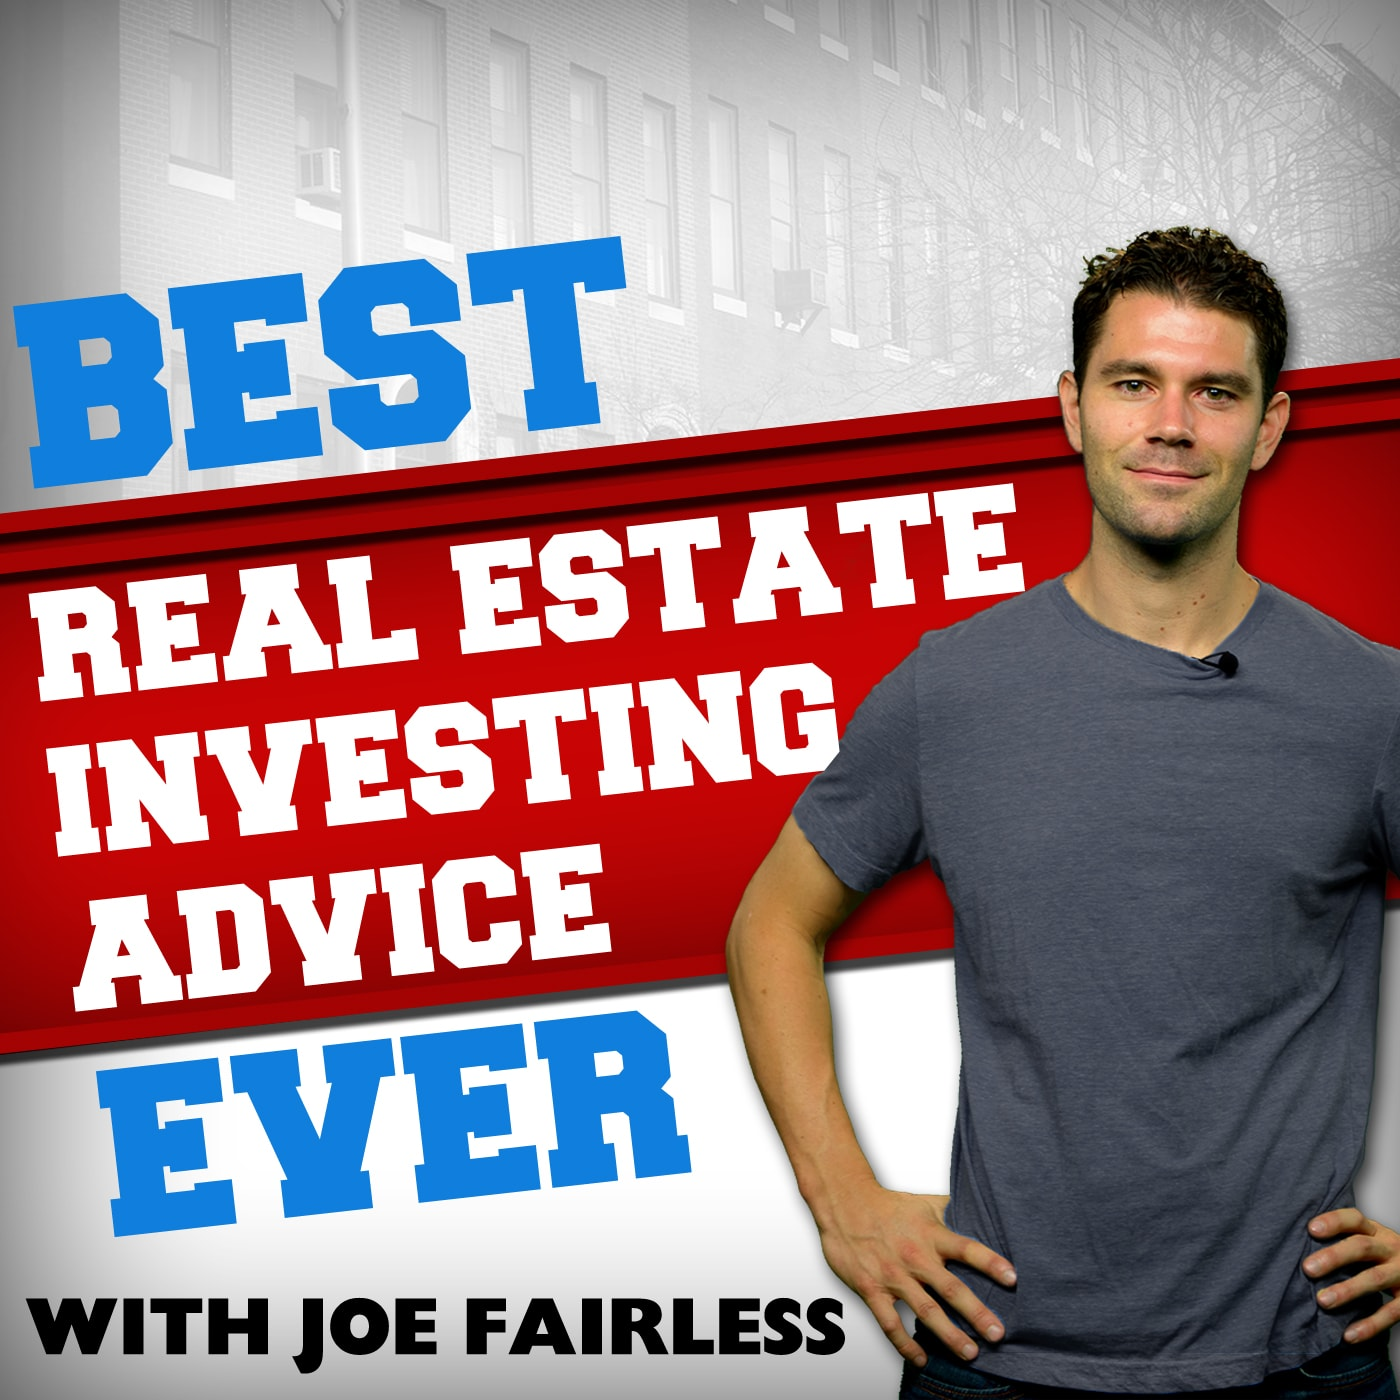 JF618: Where She Found a $60,000 Duplex that Yielded $1,500 a Month!